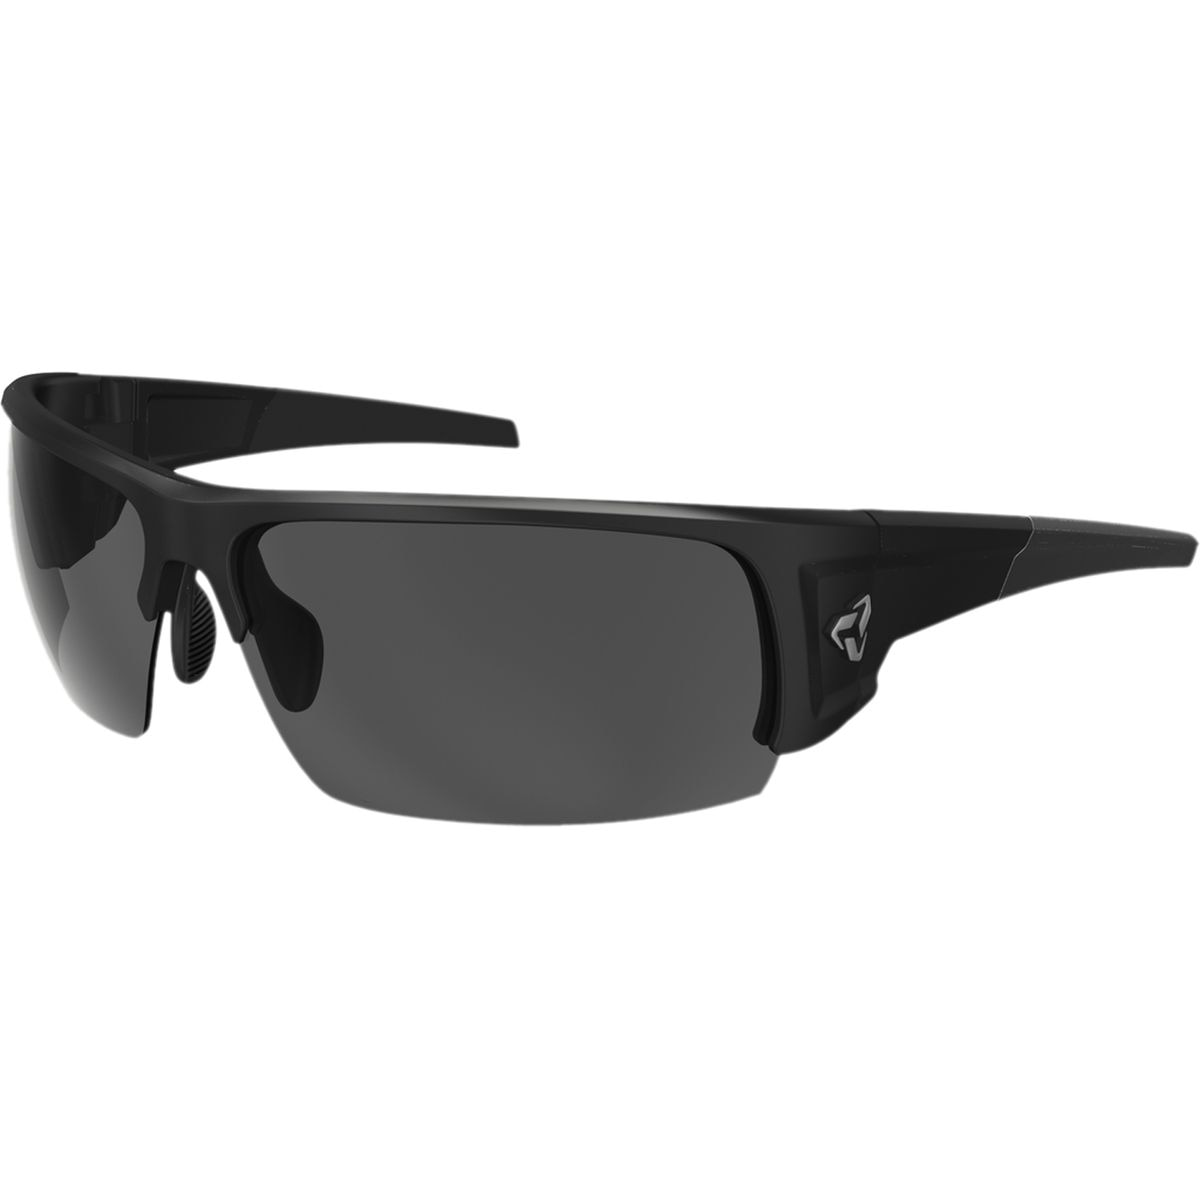 Ryders Eyewear Crankum Sunglasses Polarized Anti fog Lens Men's